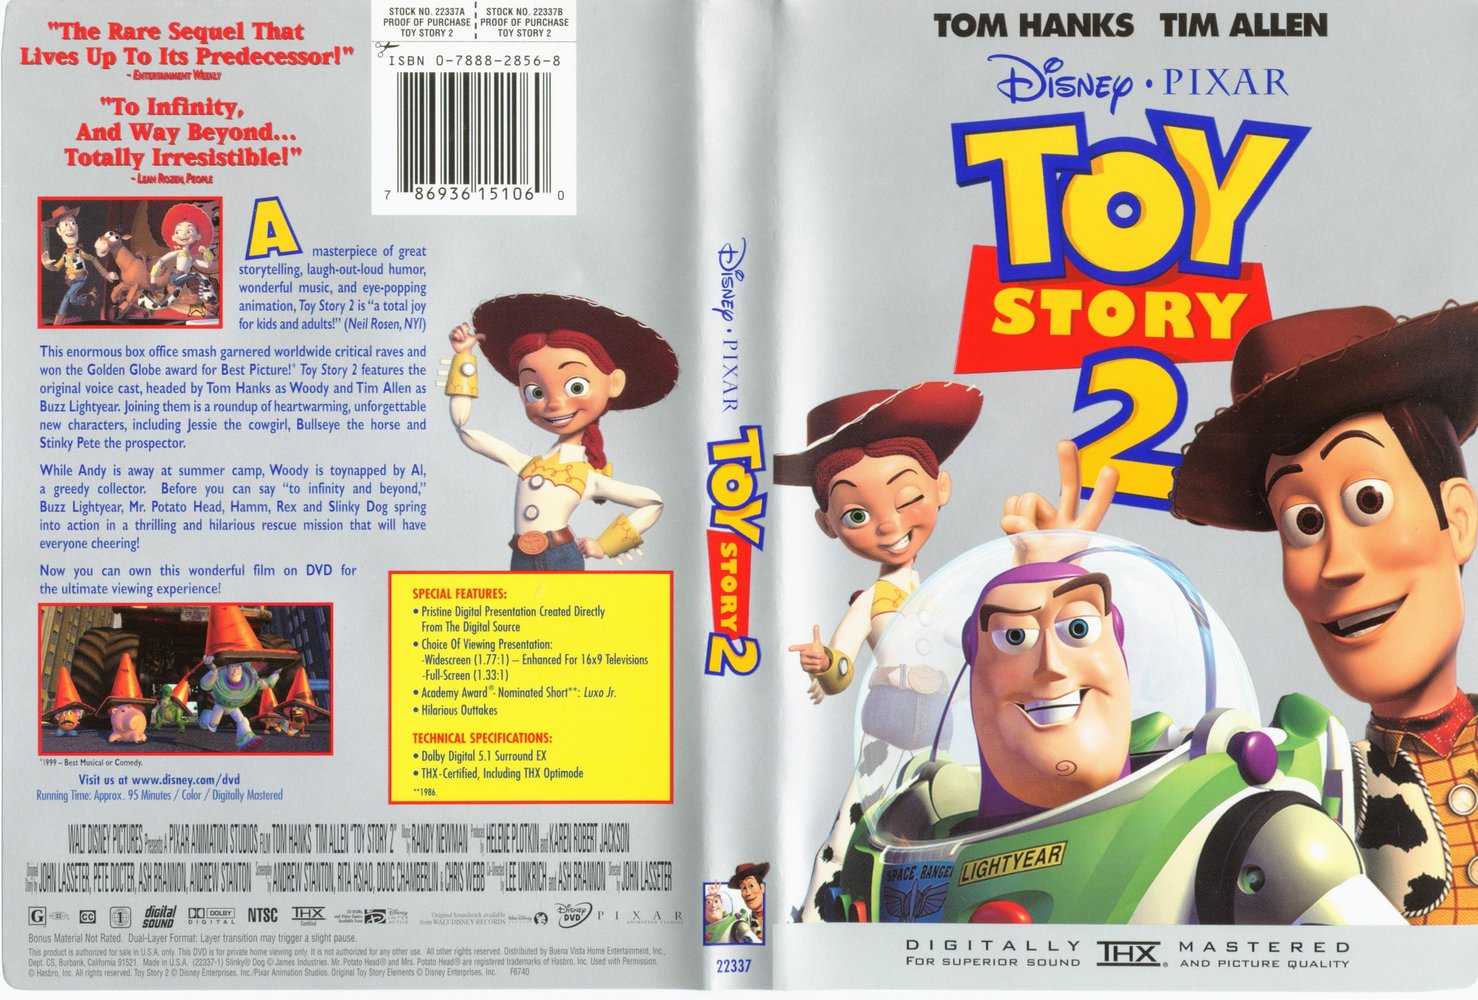 Covers box sk toy story 2 1999 high quality dvd for Toy story 5 portada